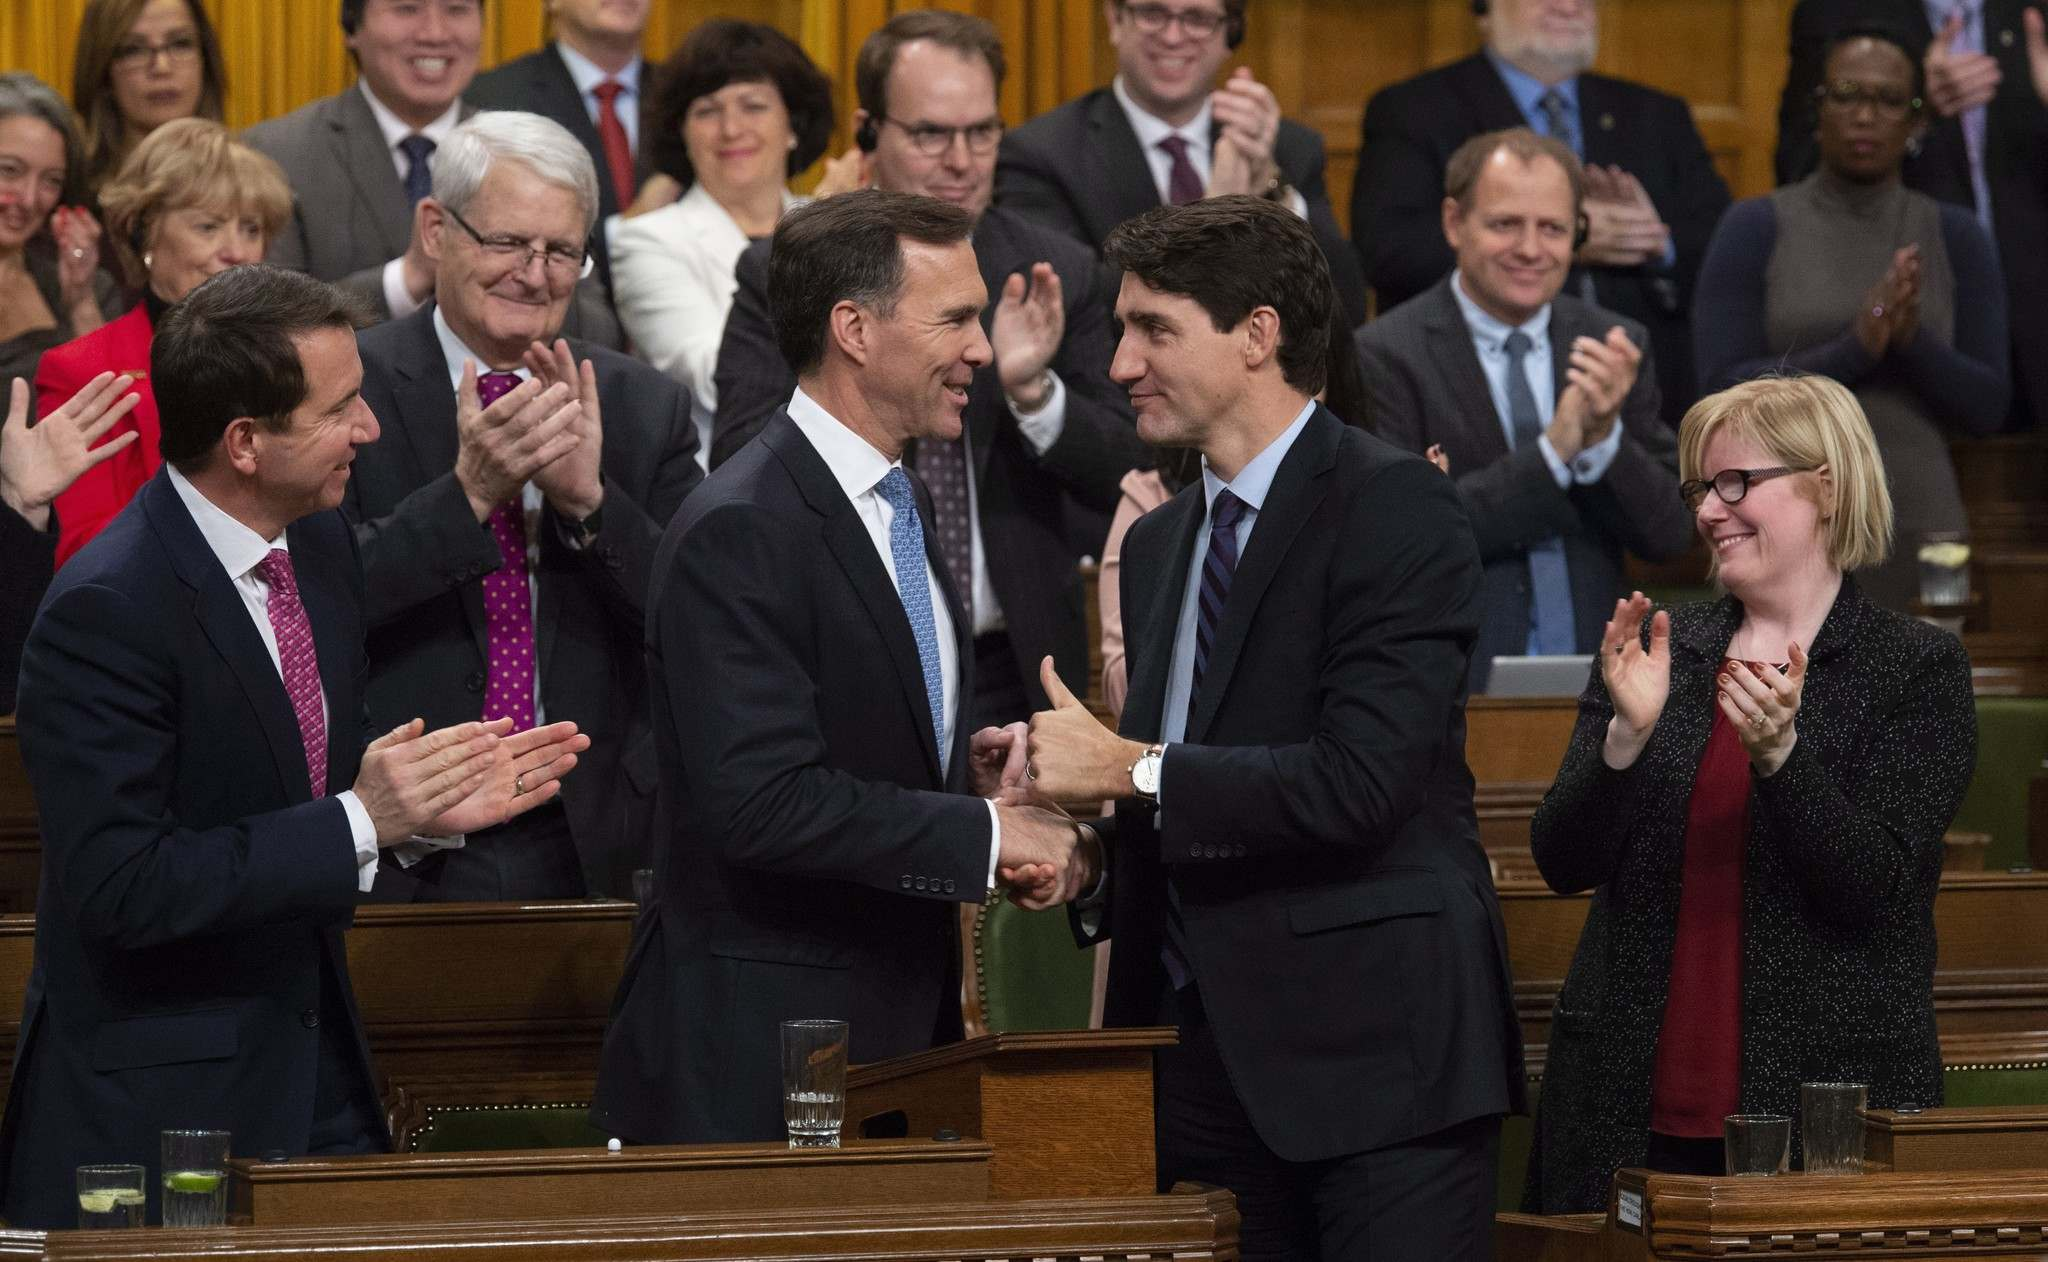 Prime Minister Justin Trudeau shakes hands with Finance Minister Bill Morneau following the fiscal economic update on Wednesday.